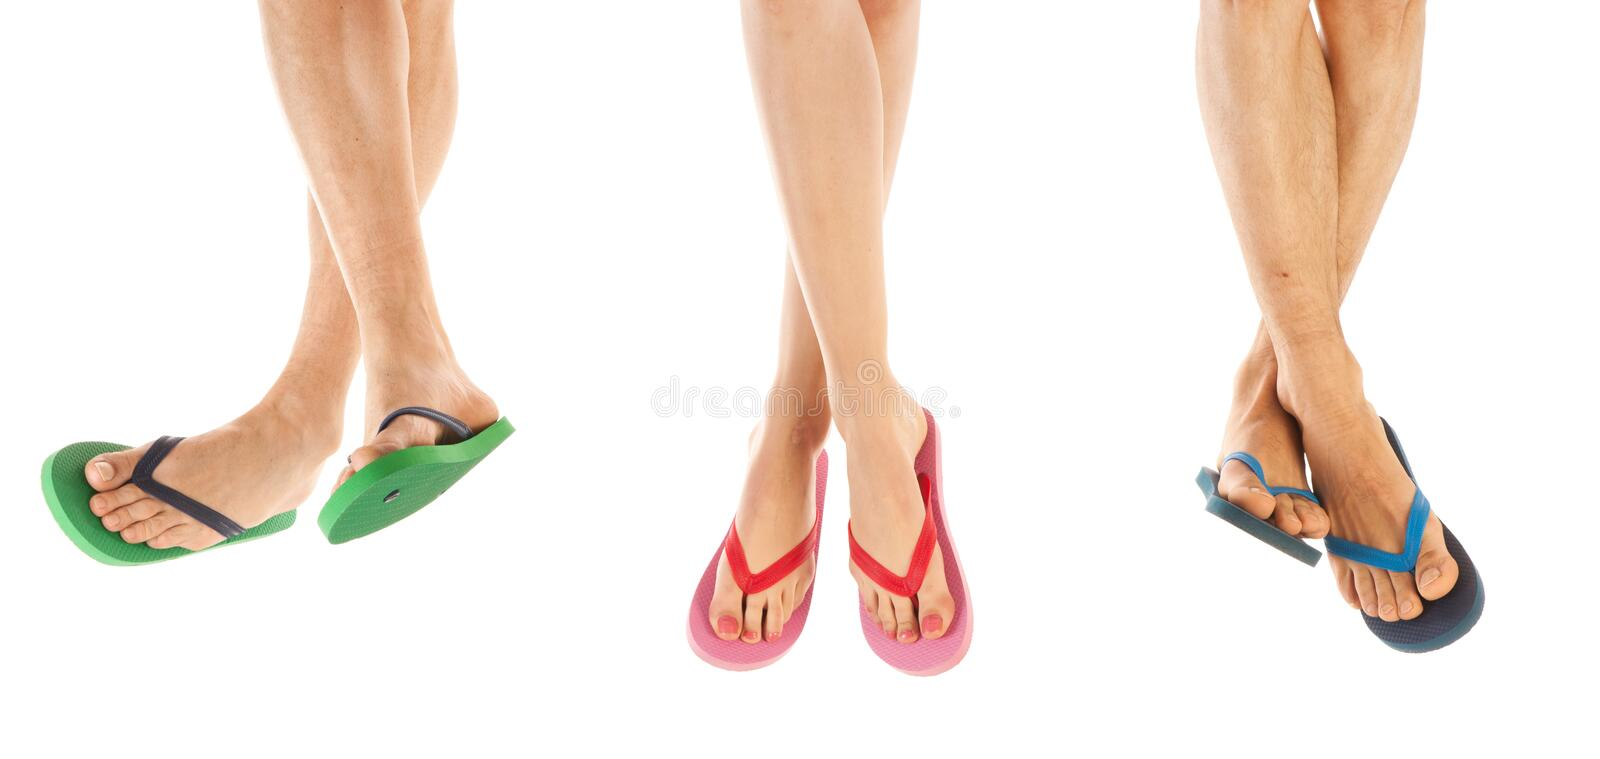 Feet in summer flip flops royalty free stock photography